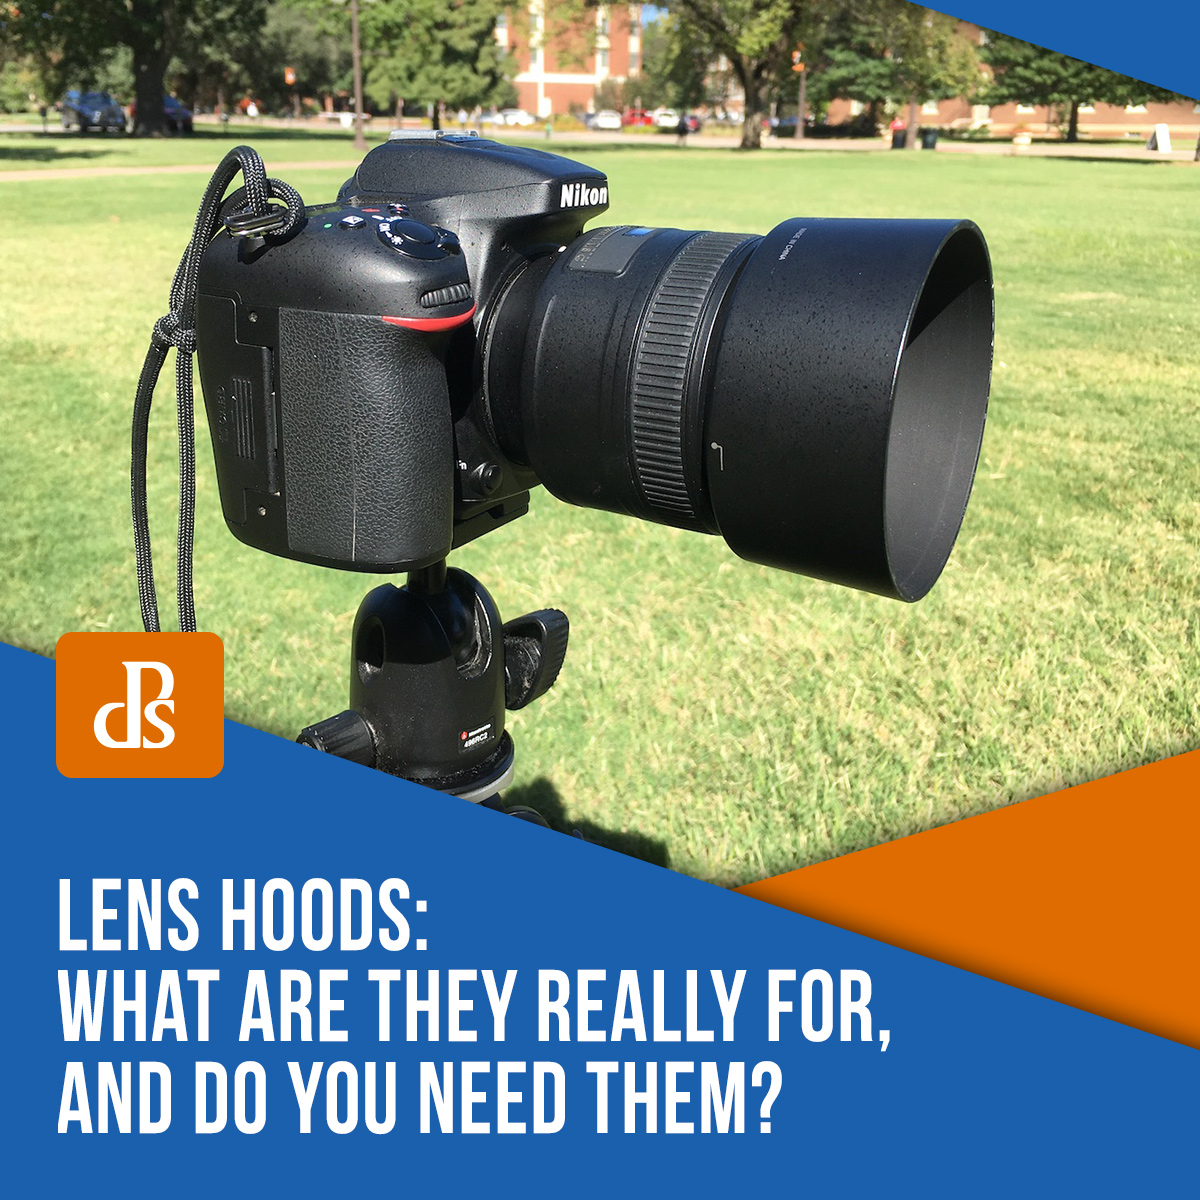 lens-hoods-what-are-they-for